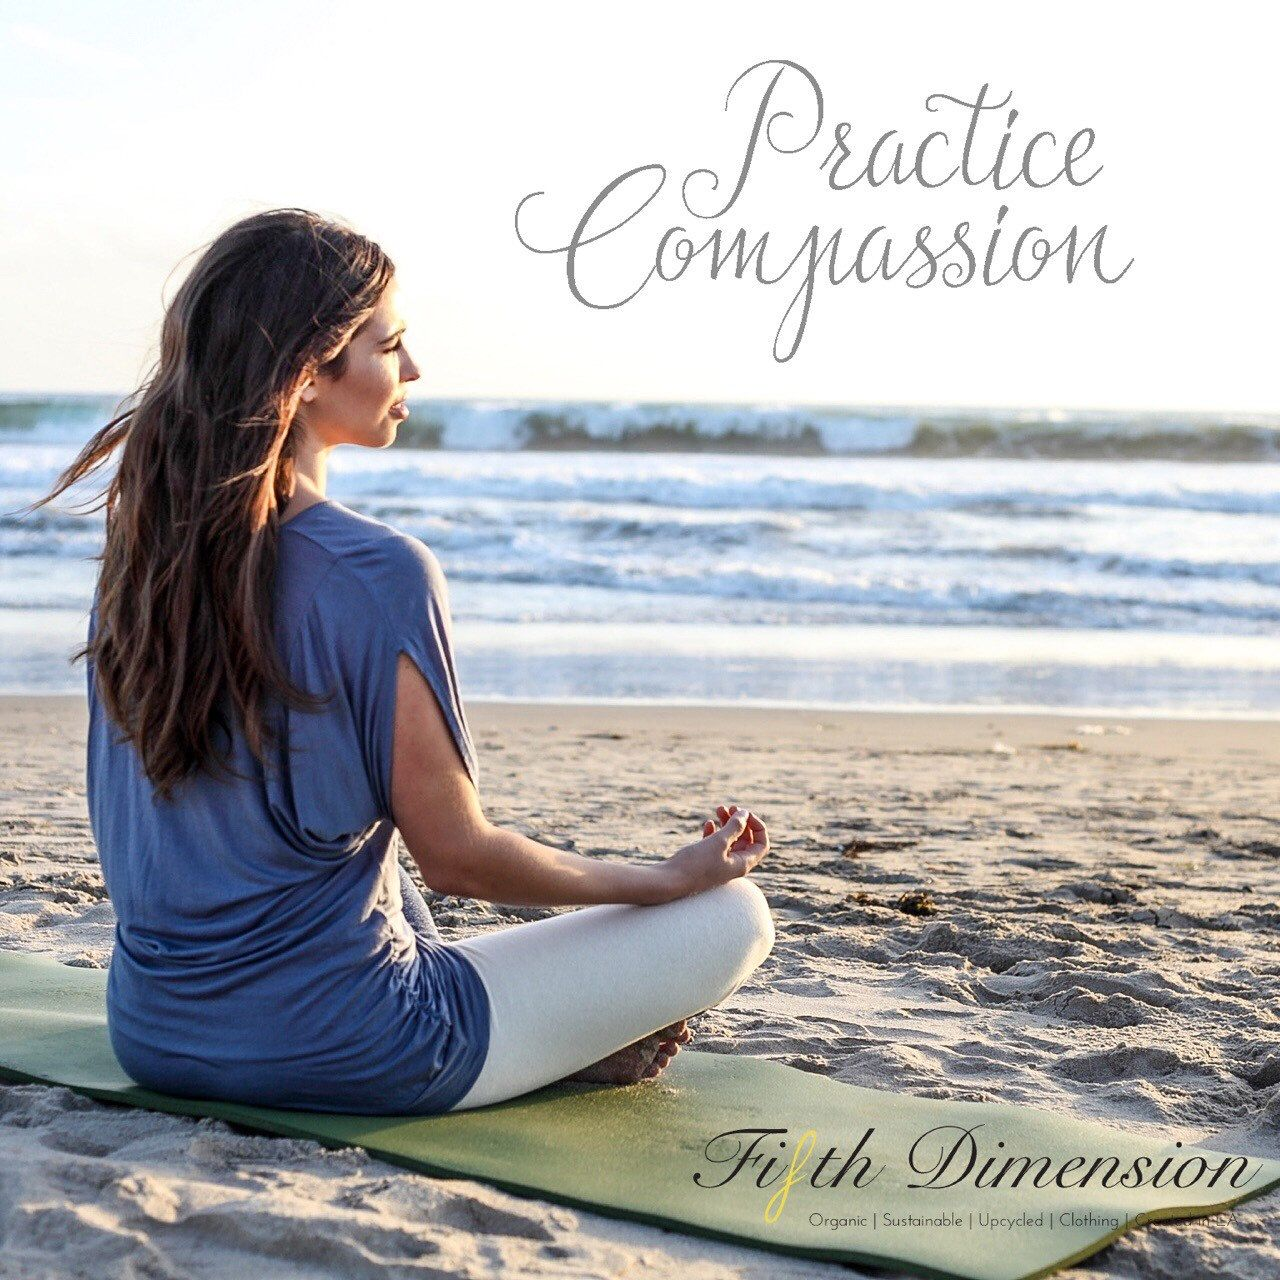 What are you doing today to practice #compassion?  By promoting #sustainability, #fairwages & #ecoconsciousness, Fifth Dimension Clothing shows compassion for our planet, for our workers and for our local economy.